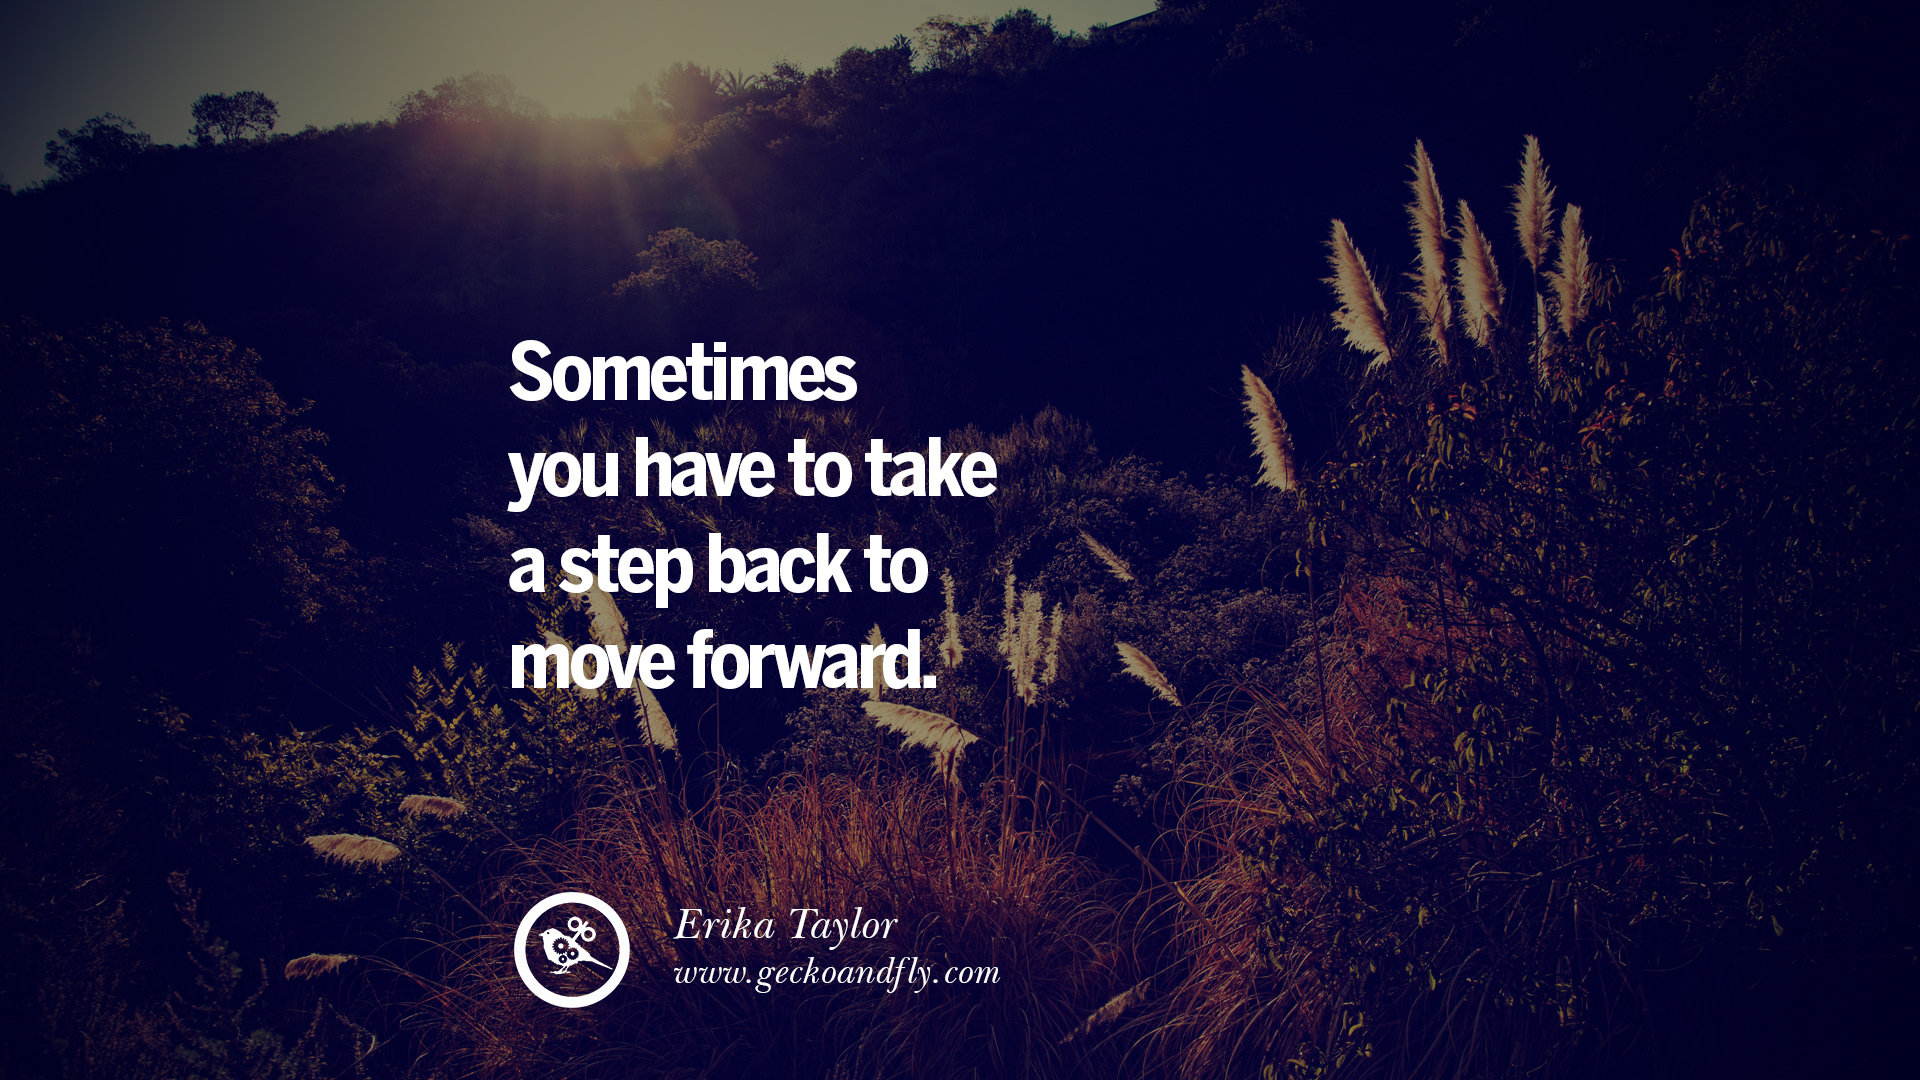 Quotes On Moving: 50 Quotes On Life About Keep Moving On And Letting Go Of